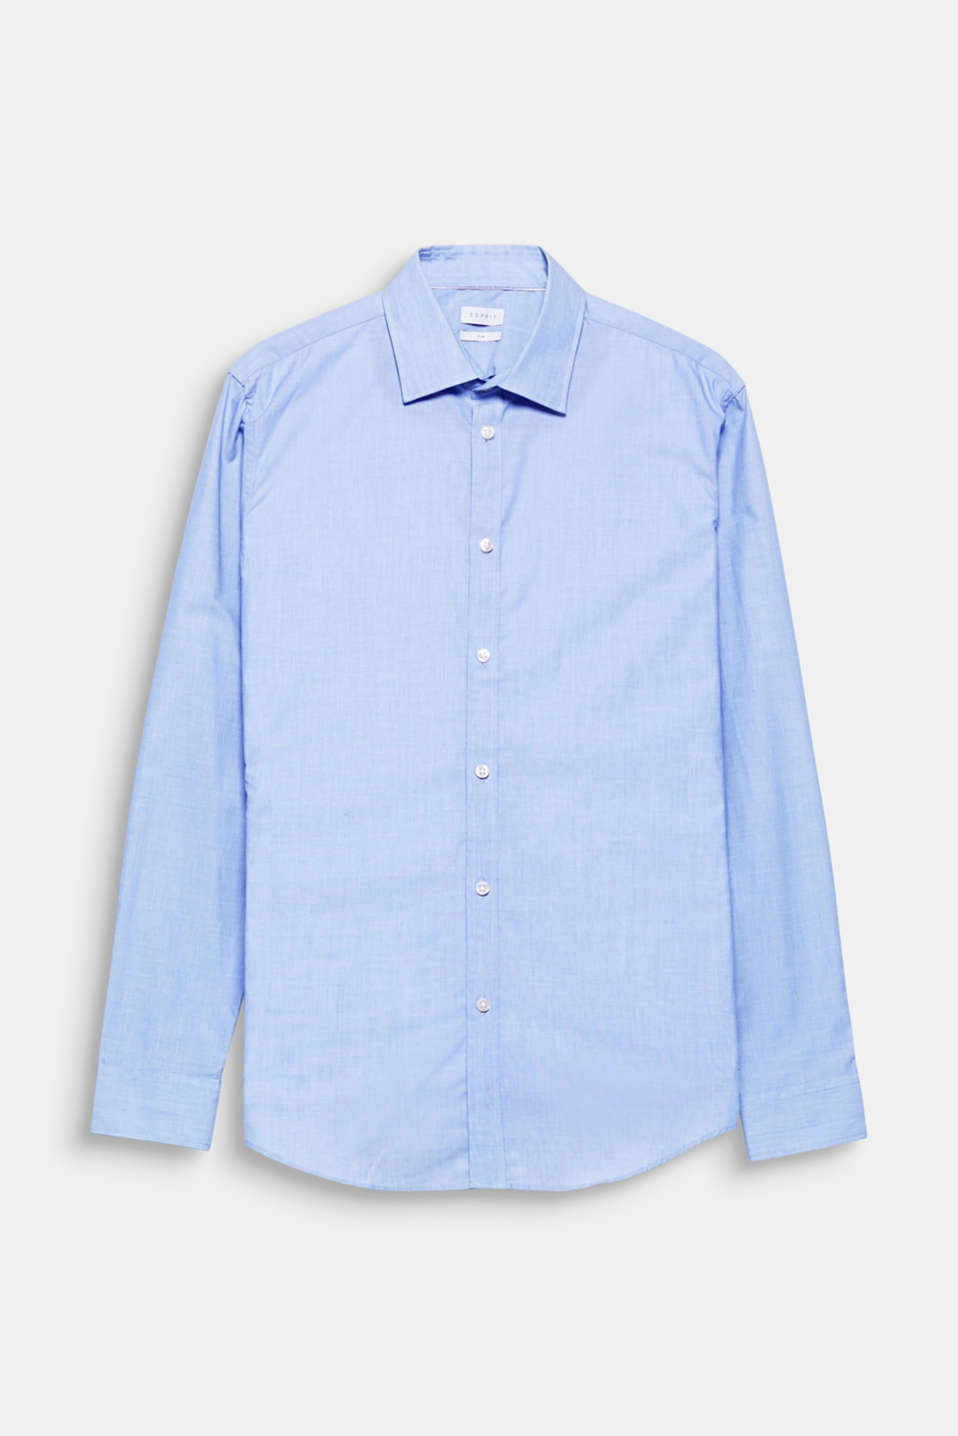 Suit up! This shirt with a distinctive chambray texture stylishly and elegantly completes your suit look.